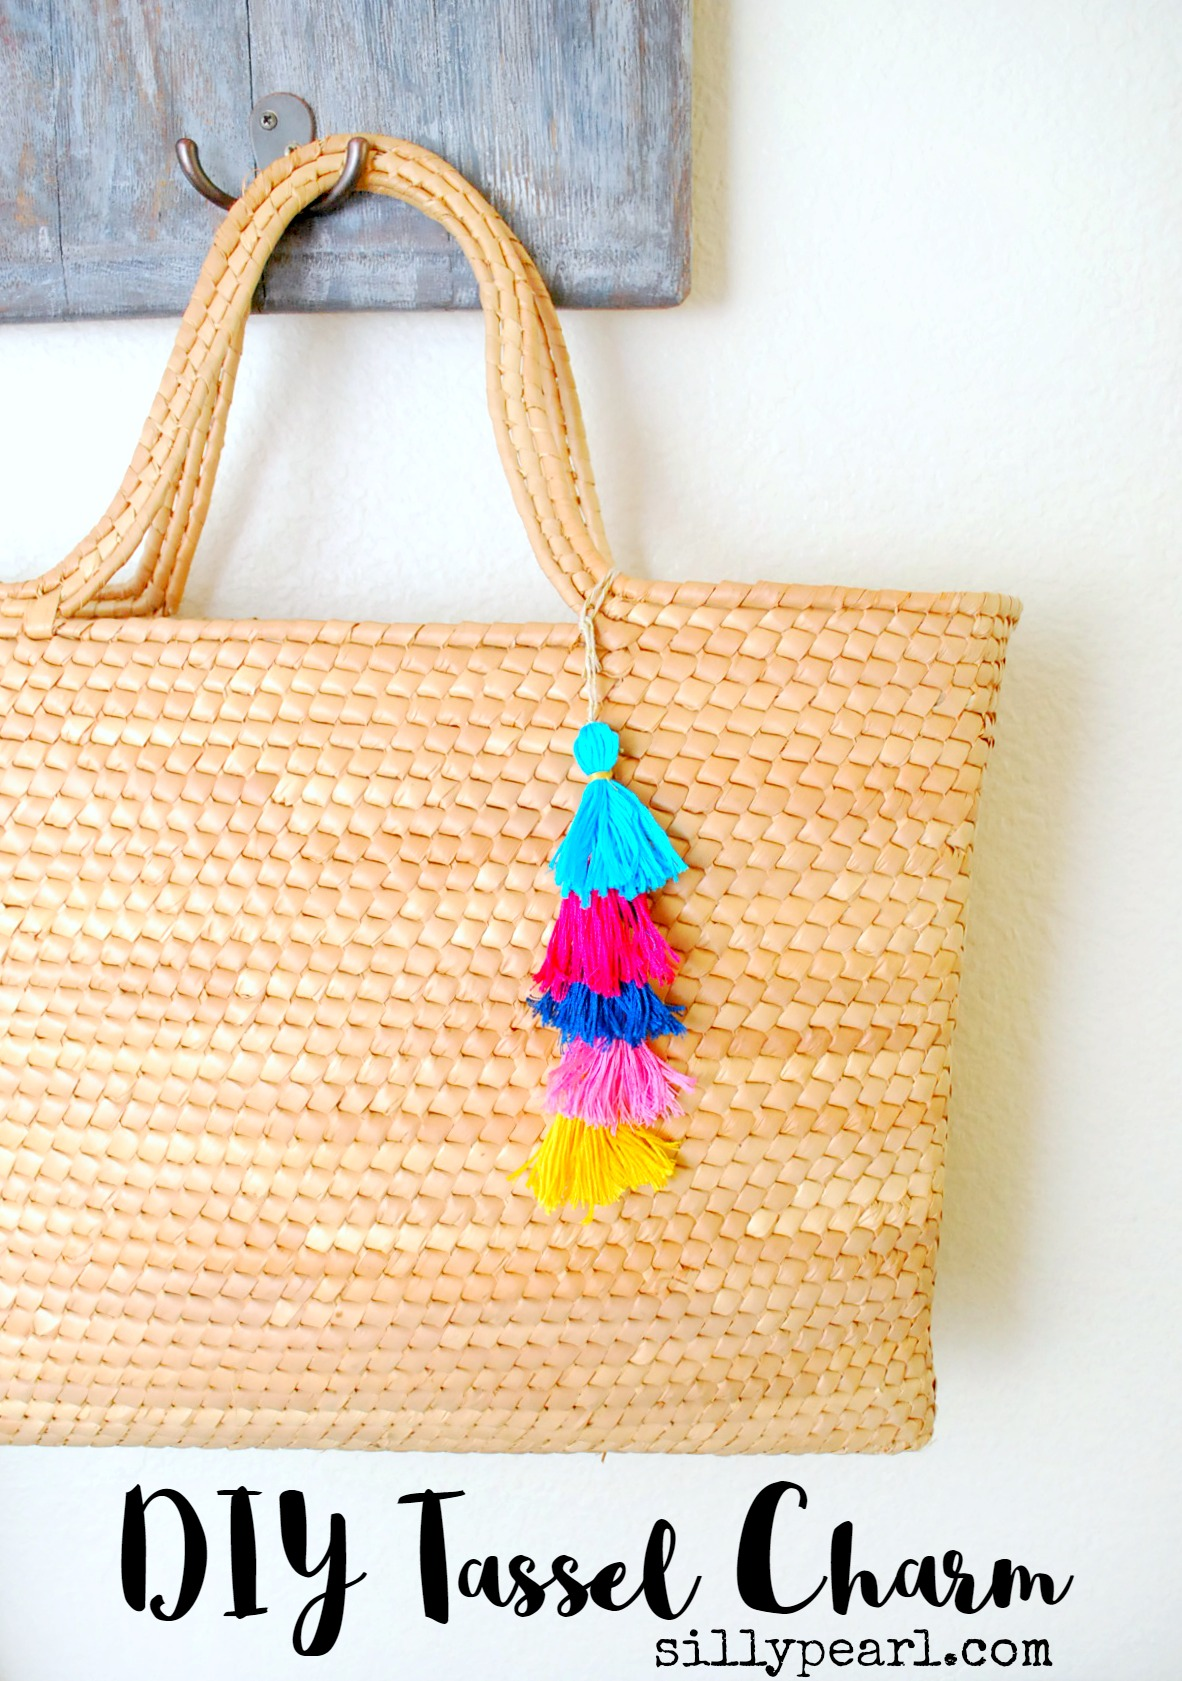 DIY Tassel Charm by The Silly Pearl for Reasons to Skip the Housework